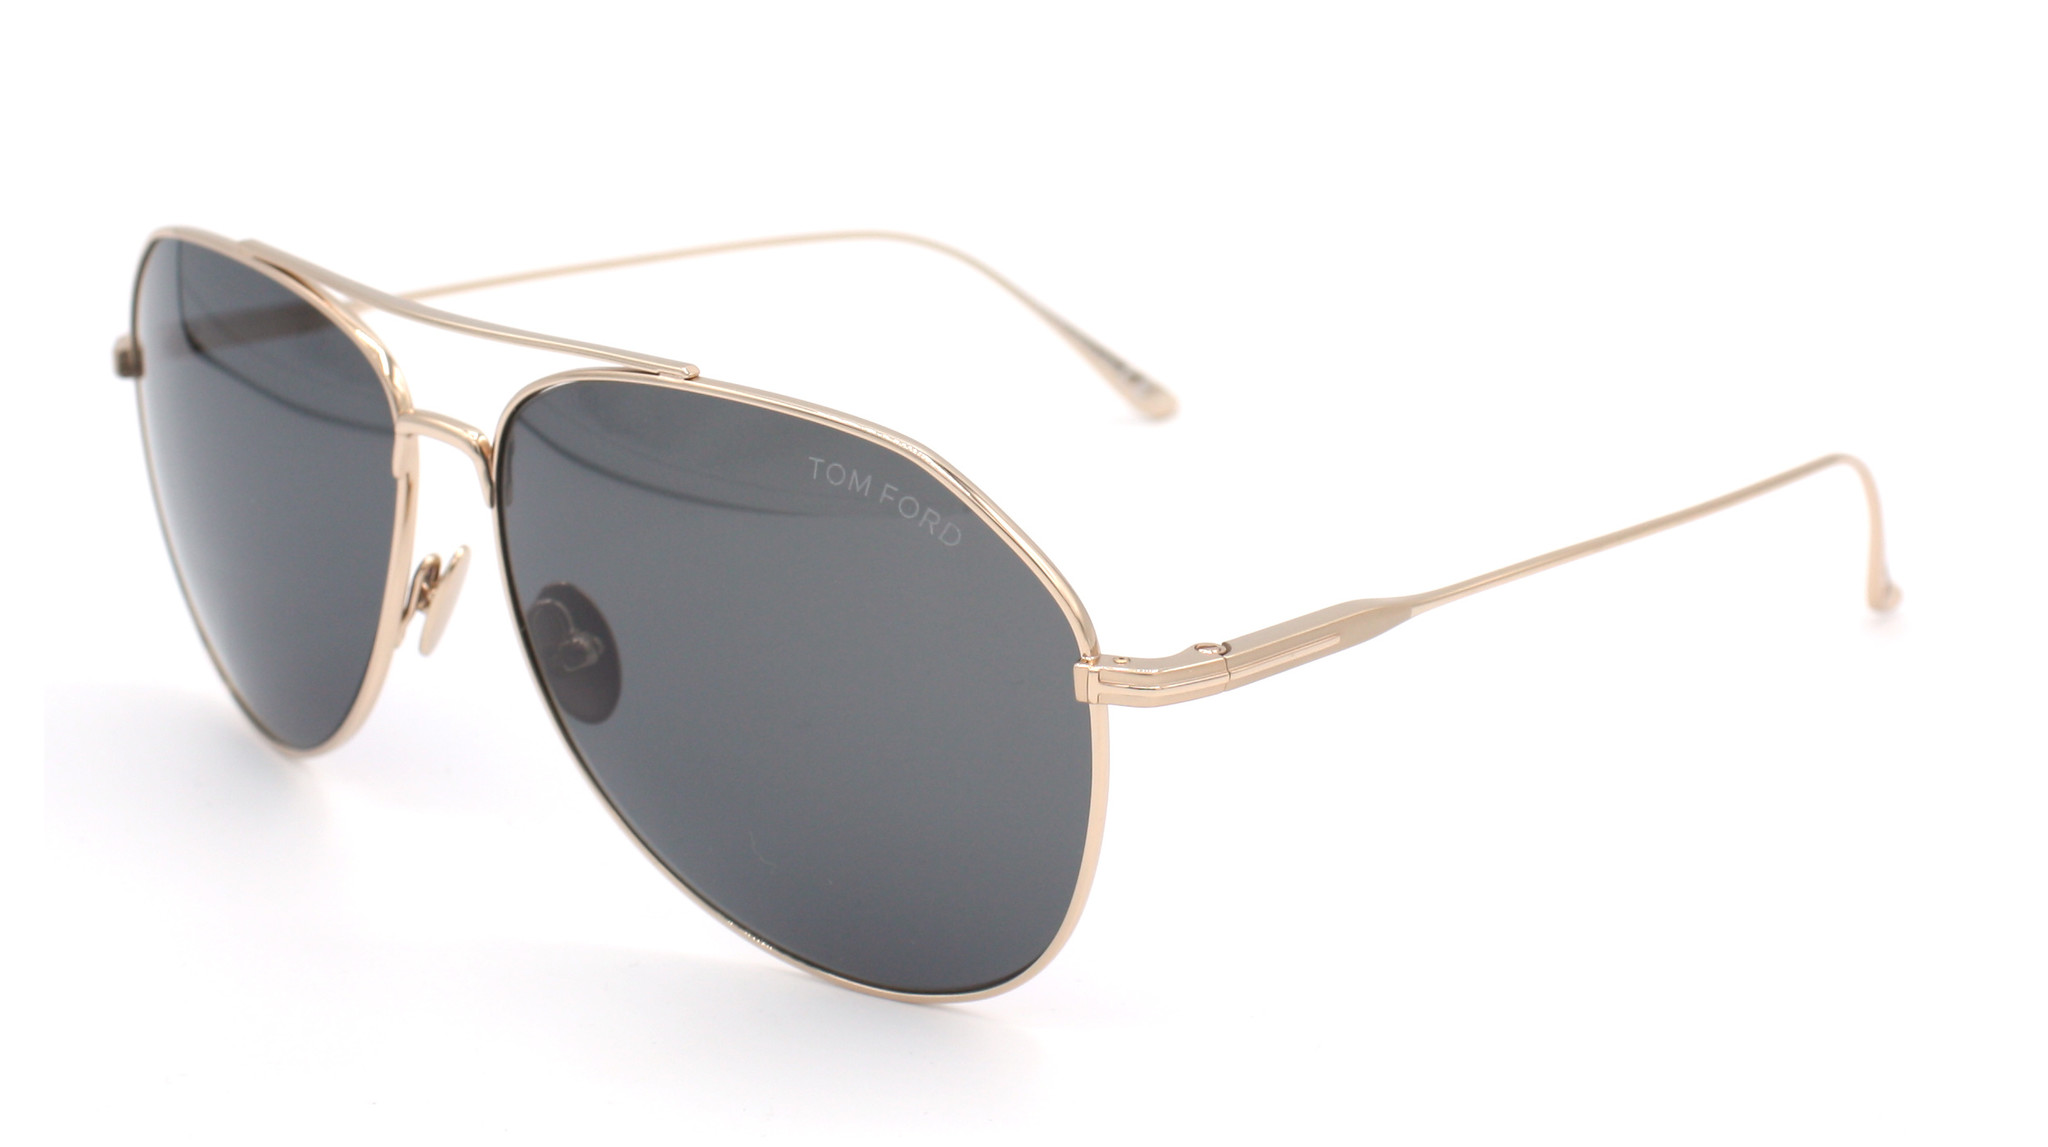 Tom Ford - TF747/S - 28A-2